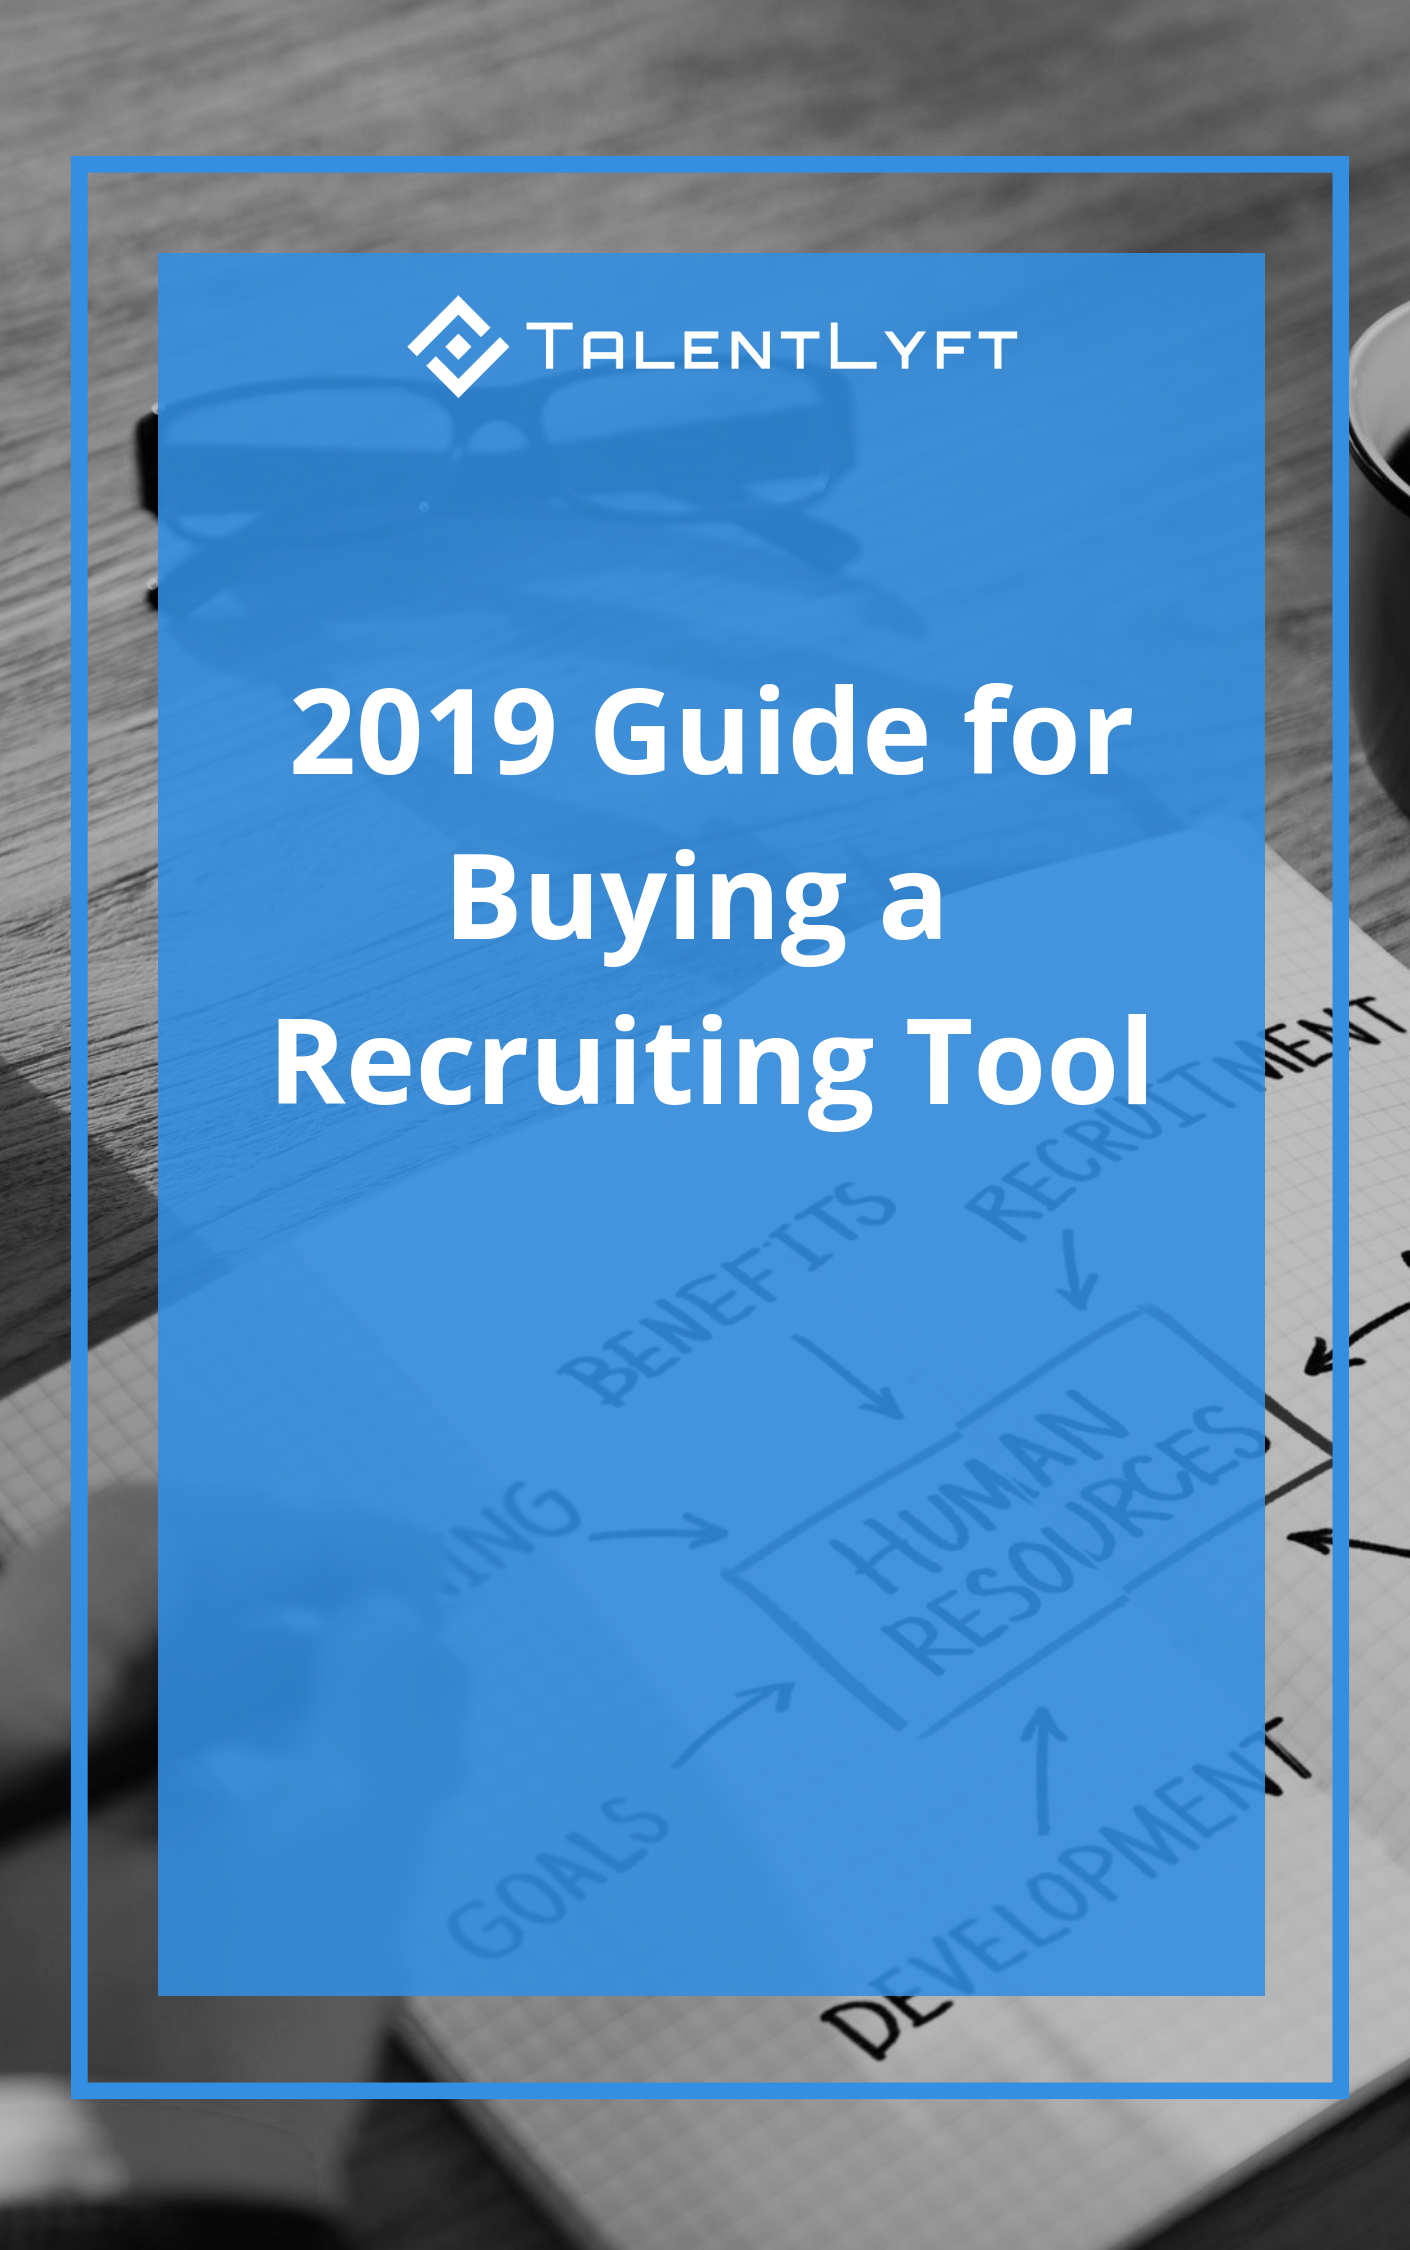 2019-guide-for-buying-a-recruiting-tool.png